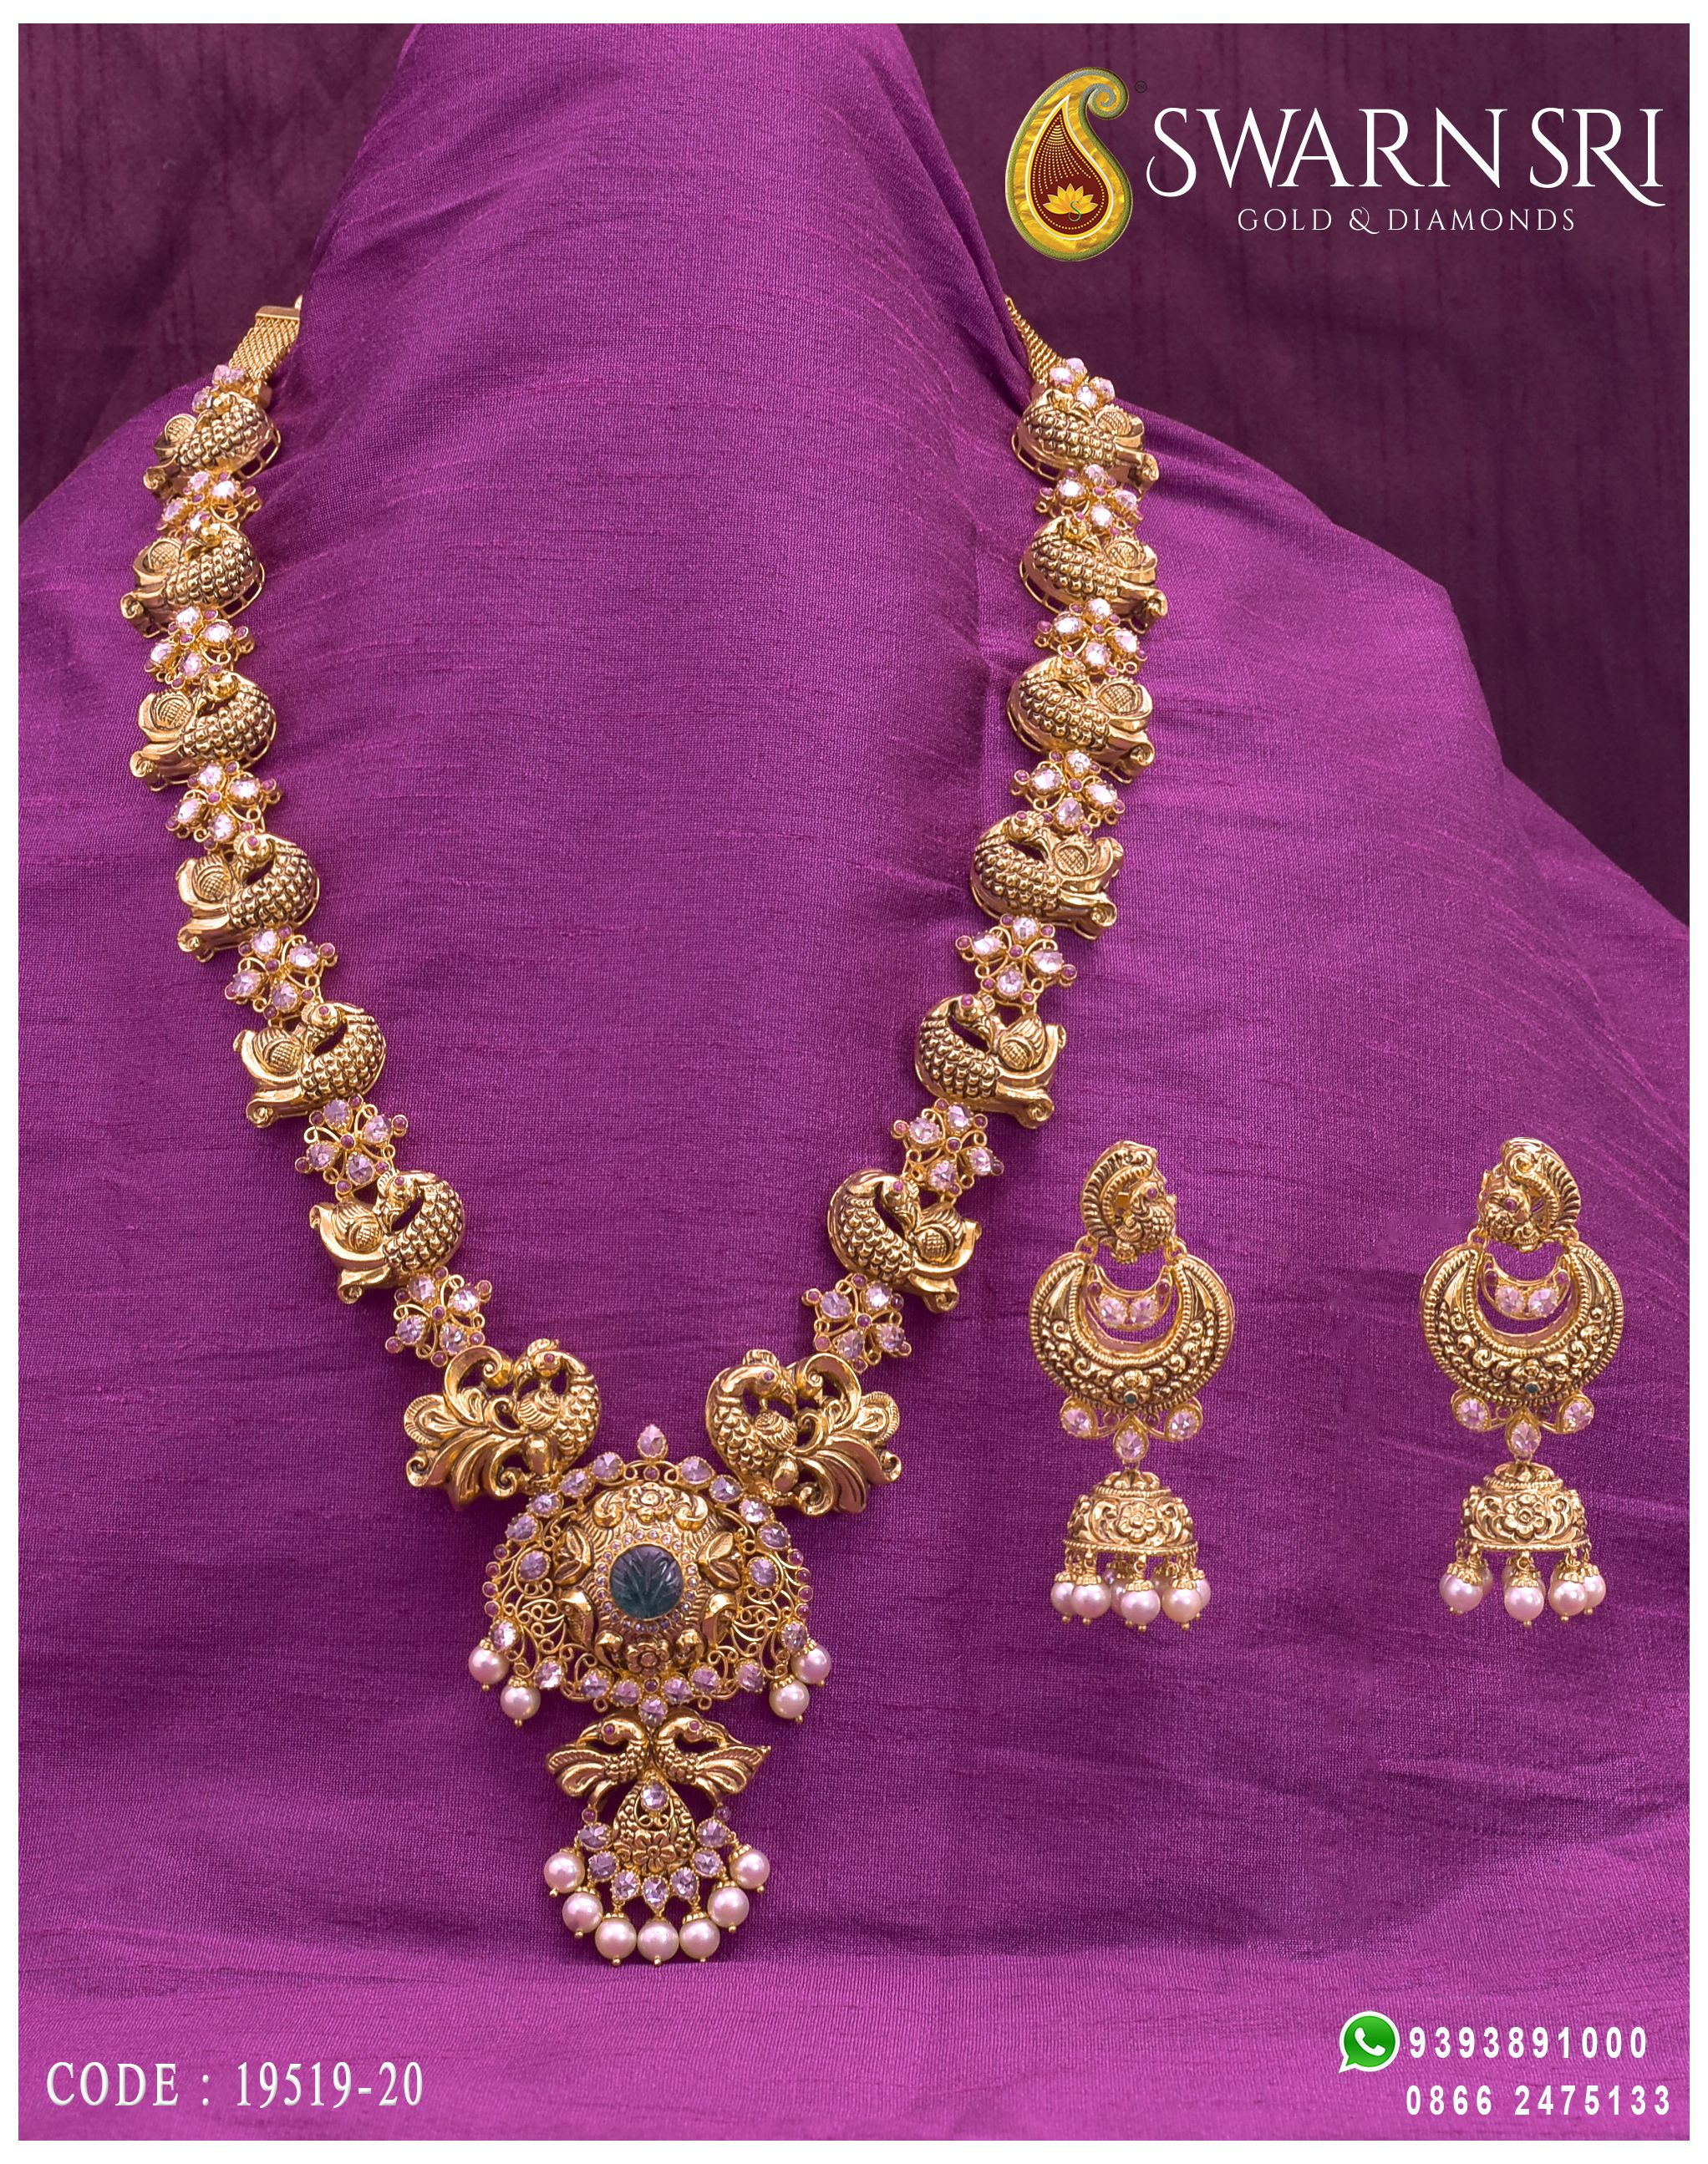 Enchanting The Beauty With Antique Finish Haaram By Swarnsri Gold Diamonds Vijayawada For Gold Fashion Necklace Gold Jewelry Fashion Bridal Gold Jewellery